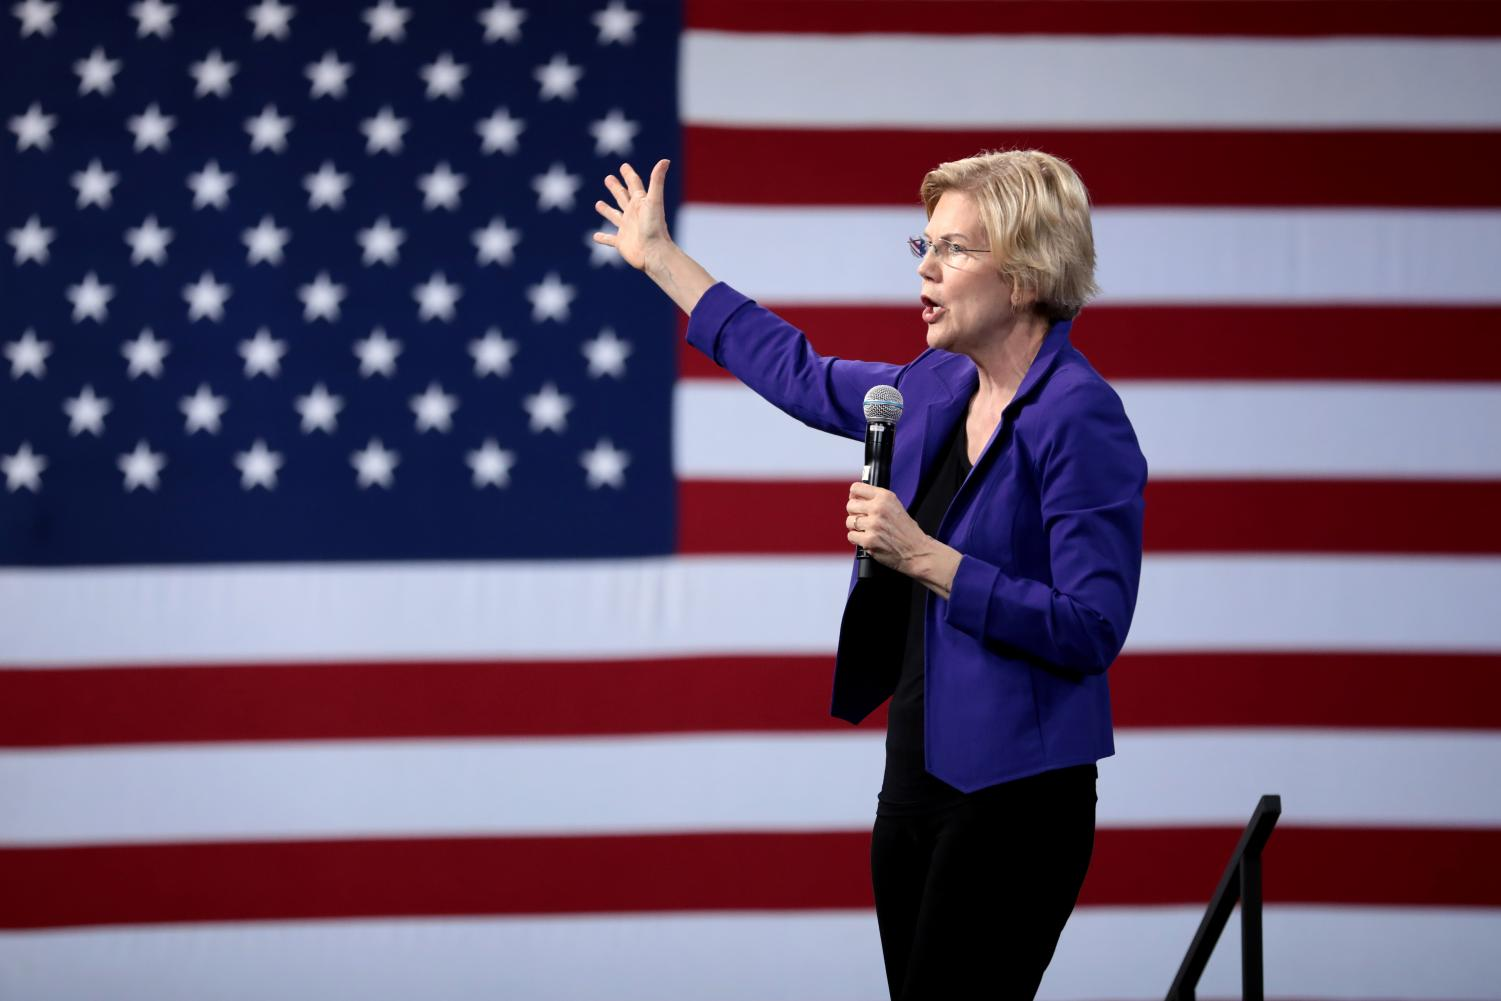 U.S. Senator Elizabeth Warren, D-Mass., speaks at the 2019 National Forum on Wages and Working People in Las Vegas. Recently, she proposed a controversial plan to make a college education more affordable for the majority of Americans. Photo courtesy of Gage Skidmore. Accessed via Flickr Creative Commons. Reposted with permission.